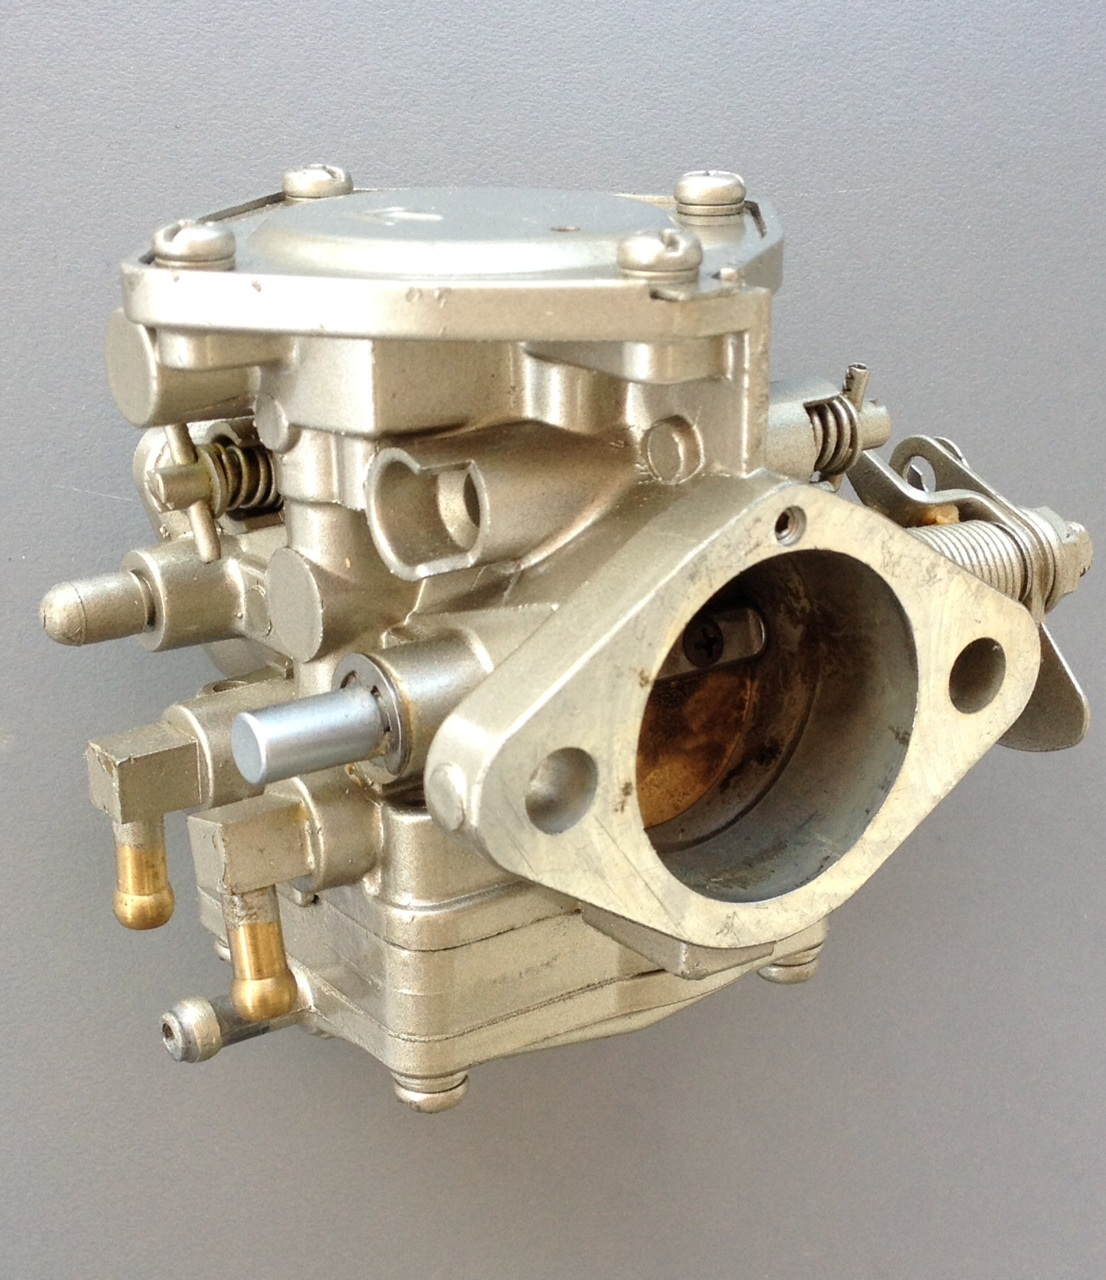 BN38-34-8113 Mikuni 38mm Super BN Jet Ski High Performance Carb